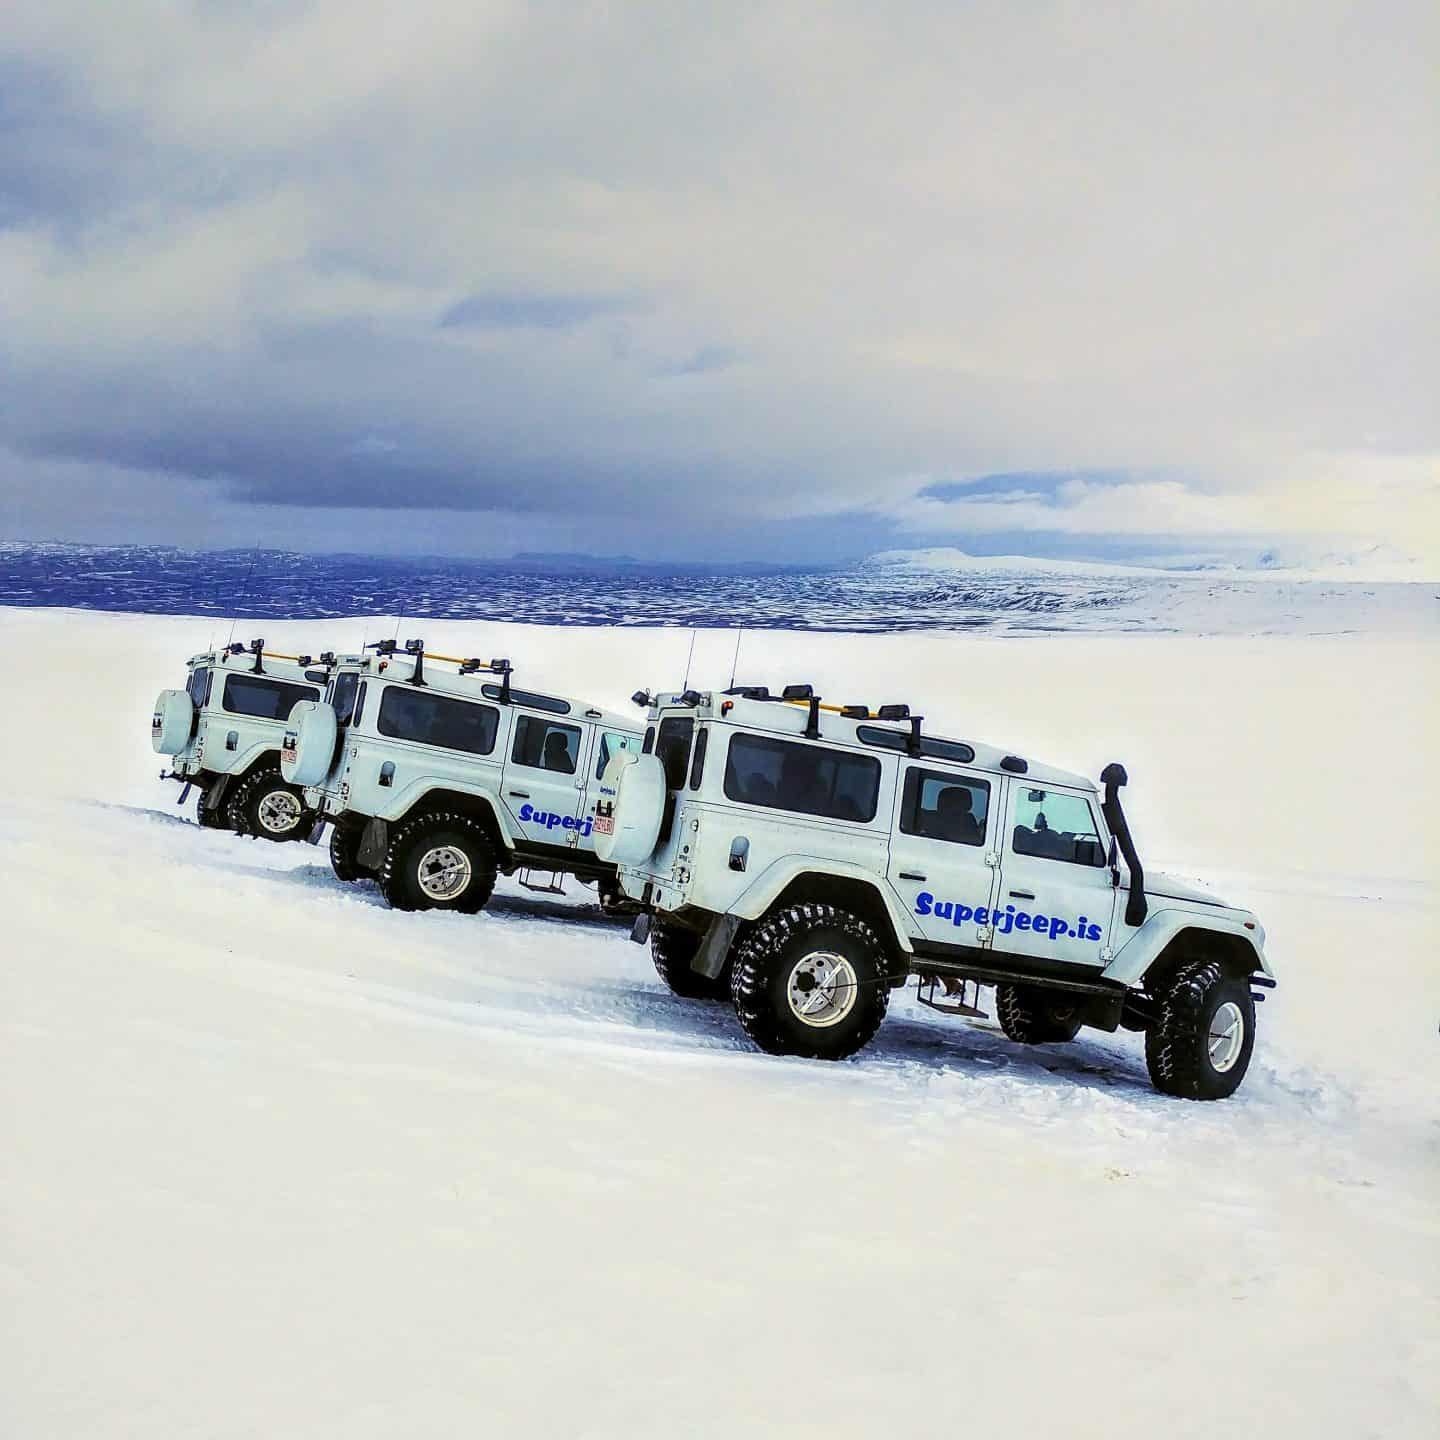 iceland super jeep on glacier